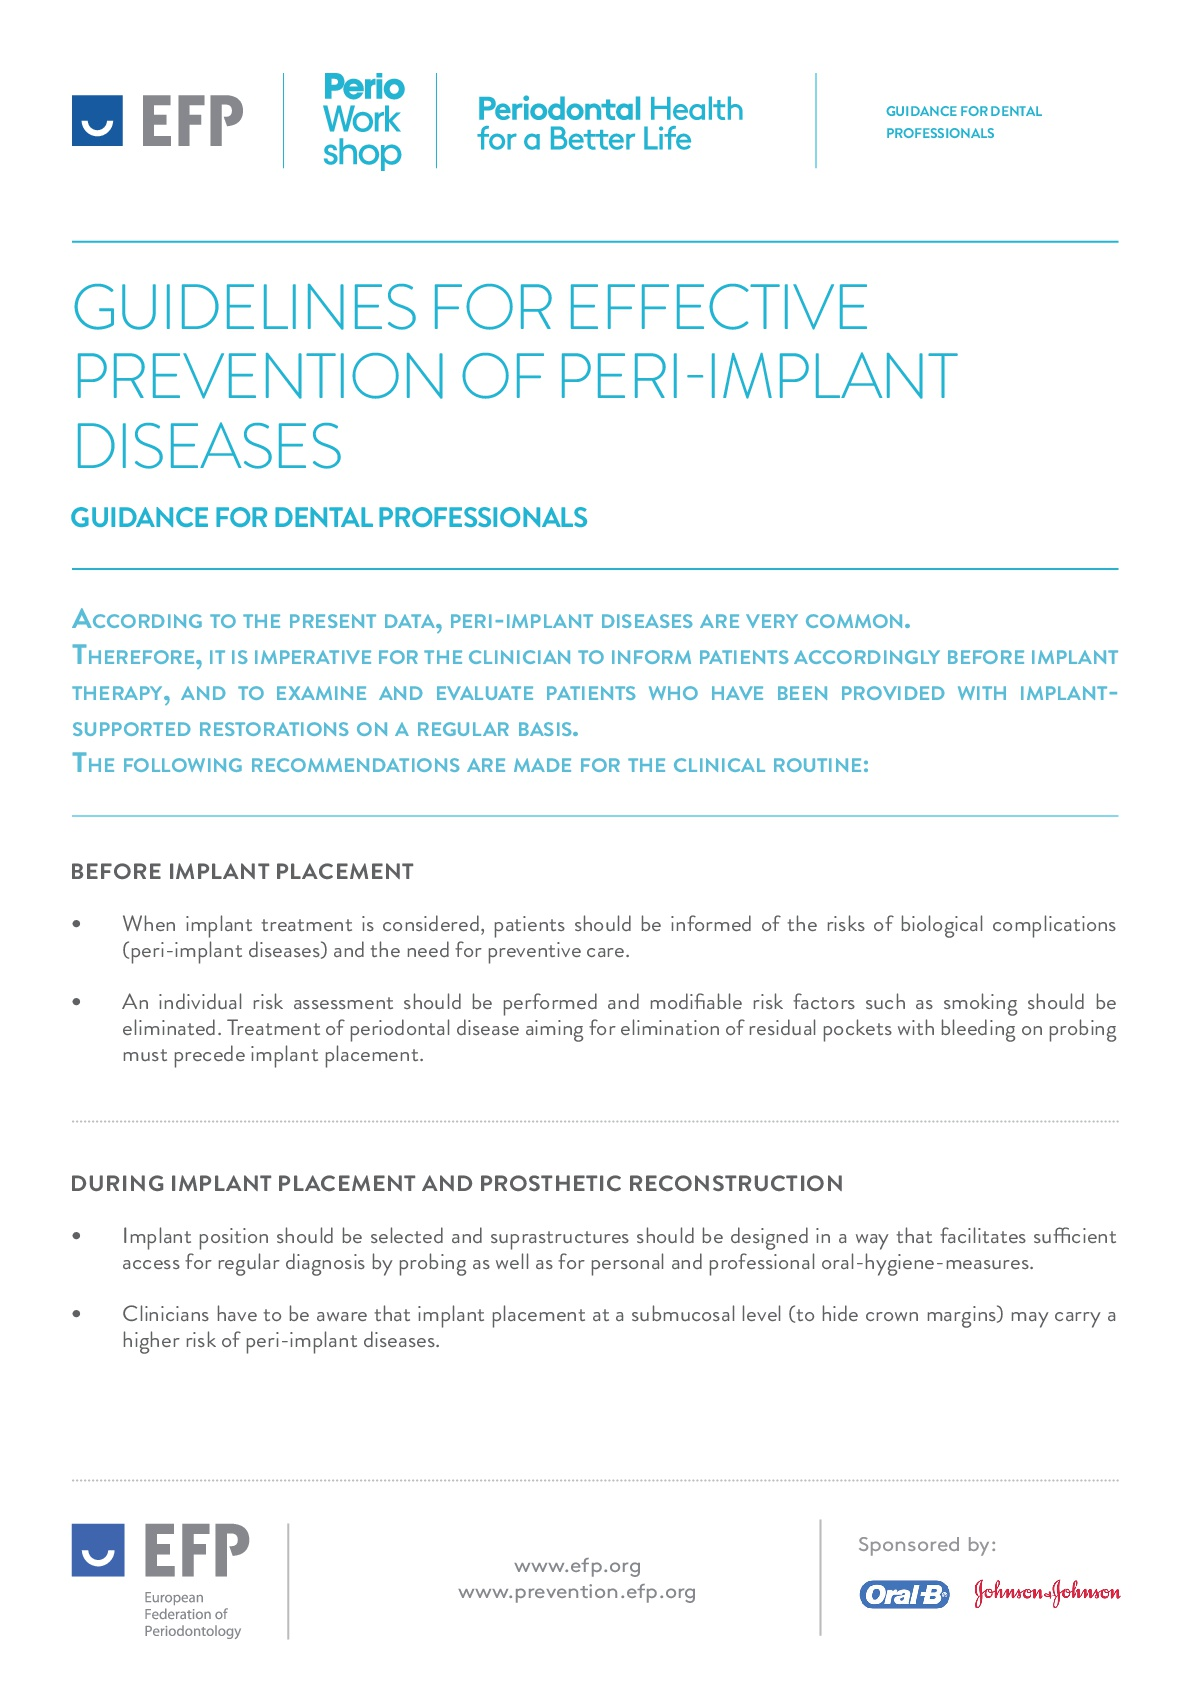 Prevention-of-peri-implant-diseases-guidance-for-dental-professionals-(1)-002